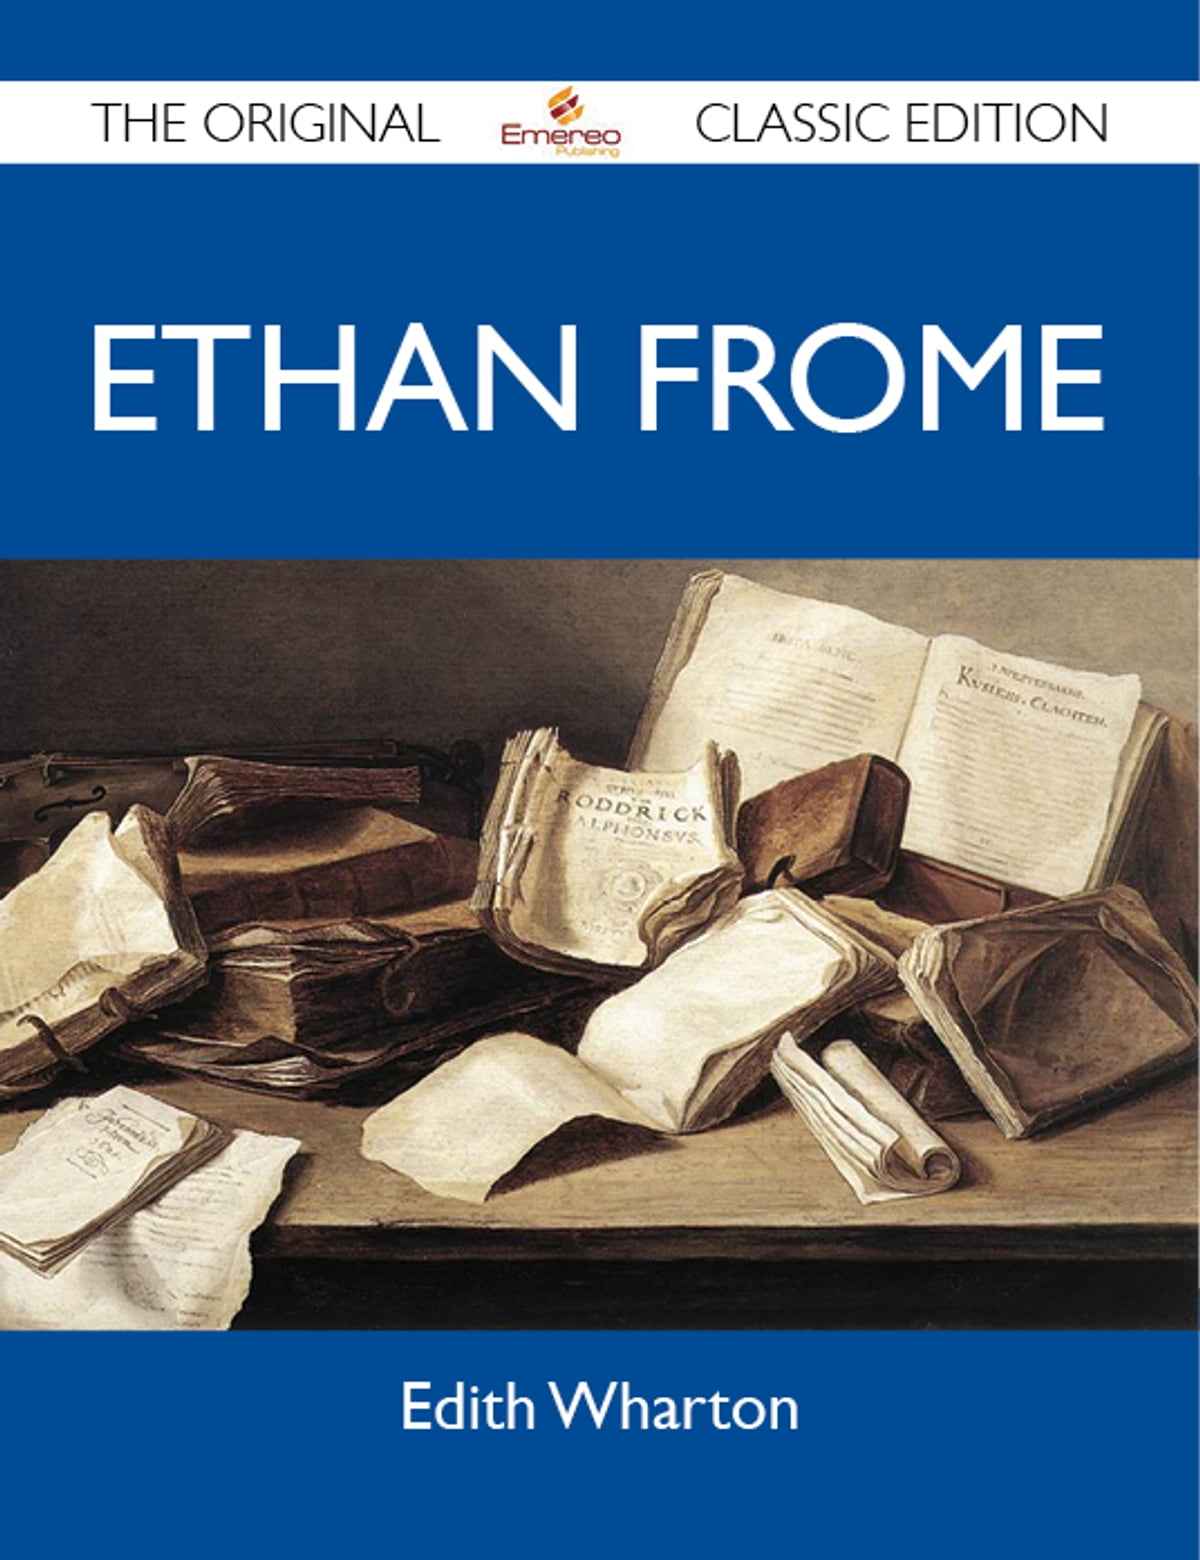 """literary analysis of the novel ethan frome by edith wharton When edith wharton's novel """"ethan frome"""" was first published in 1911, reviews were largely negative critics called the story cruel and violent and sales of the novel were dismal today, edith wharton's haunting tale of forbidden romance in a rural new england town is her most widely-read novel."""